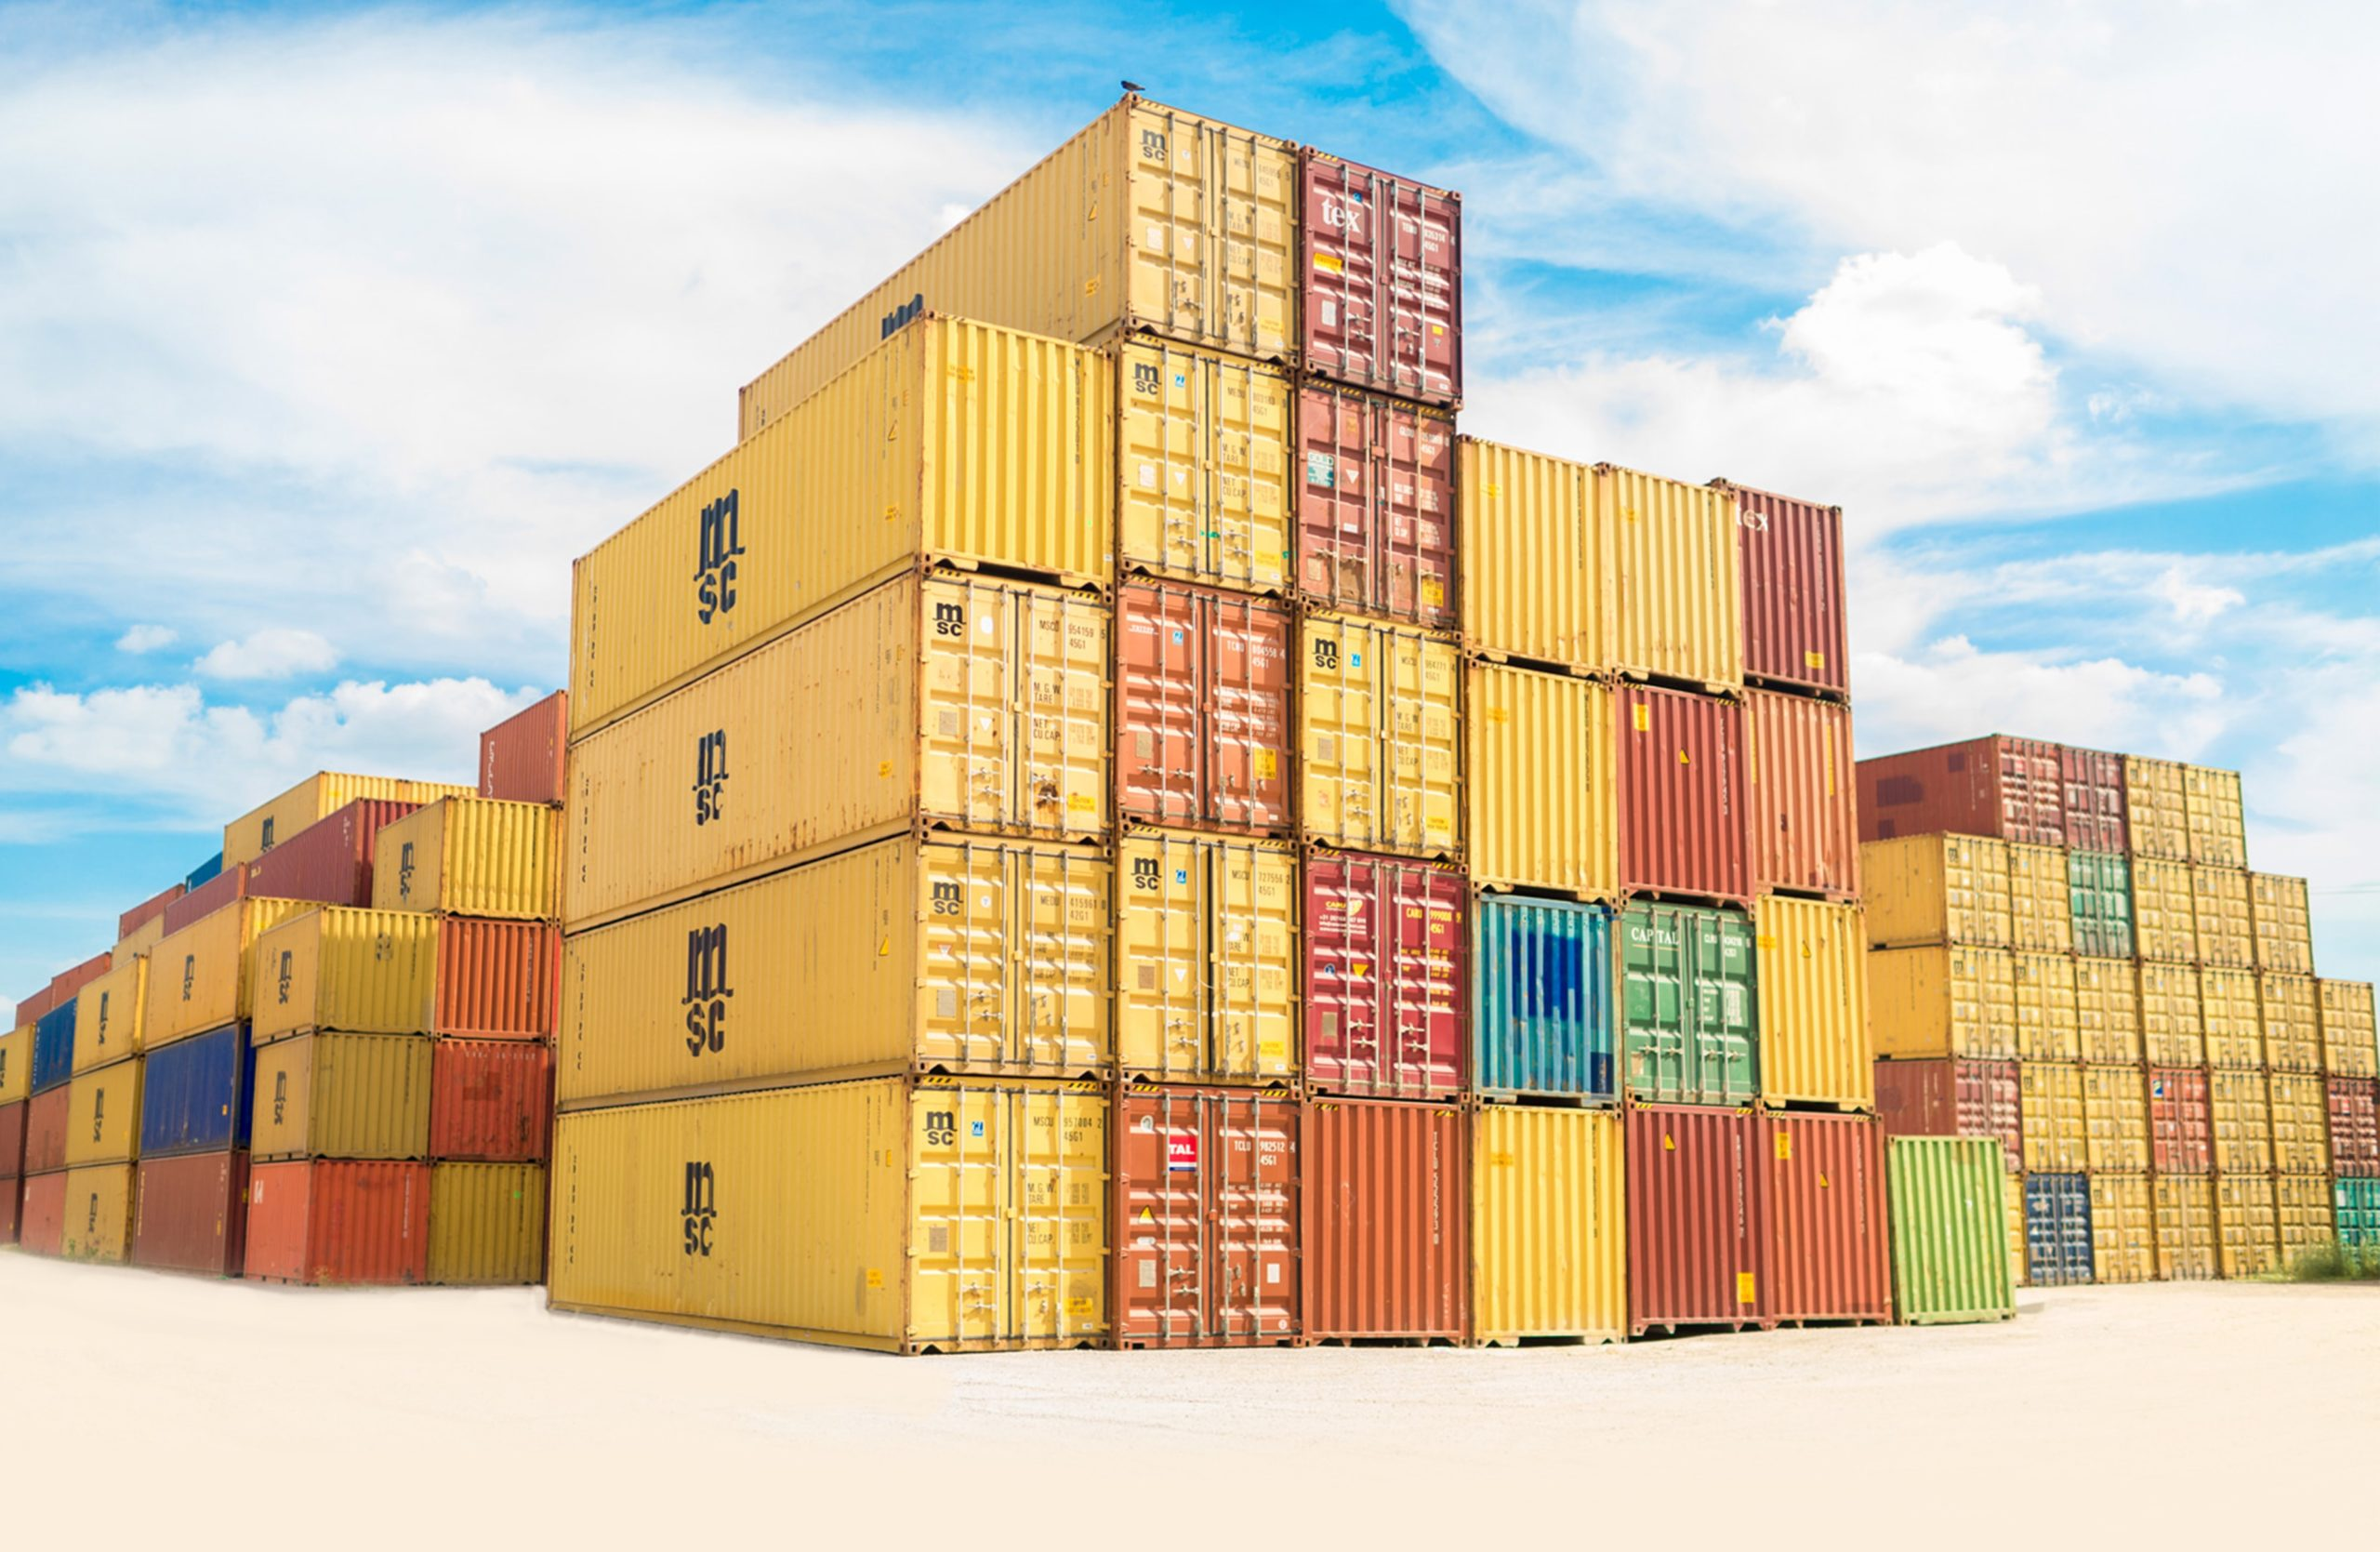 How to inspect the storage containers before renting them out?